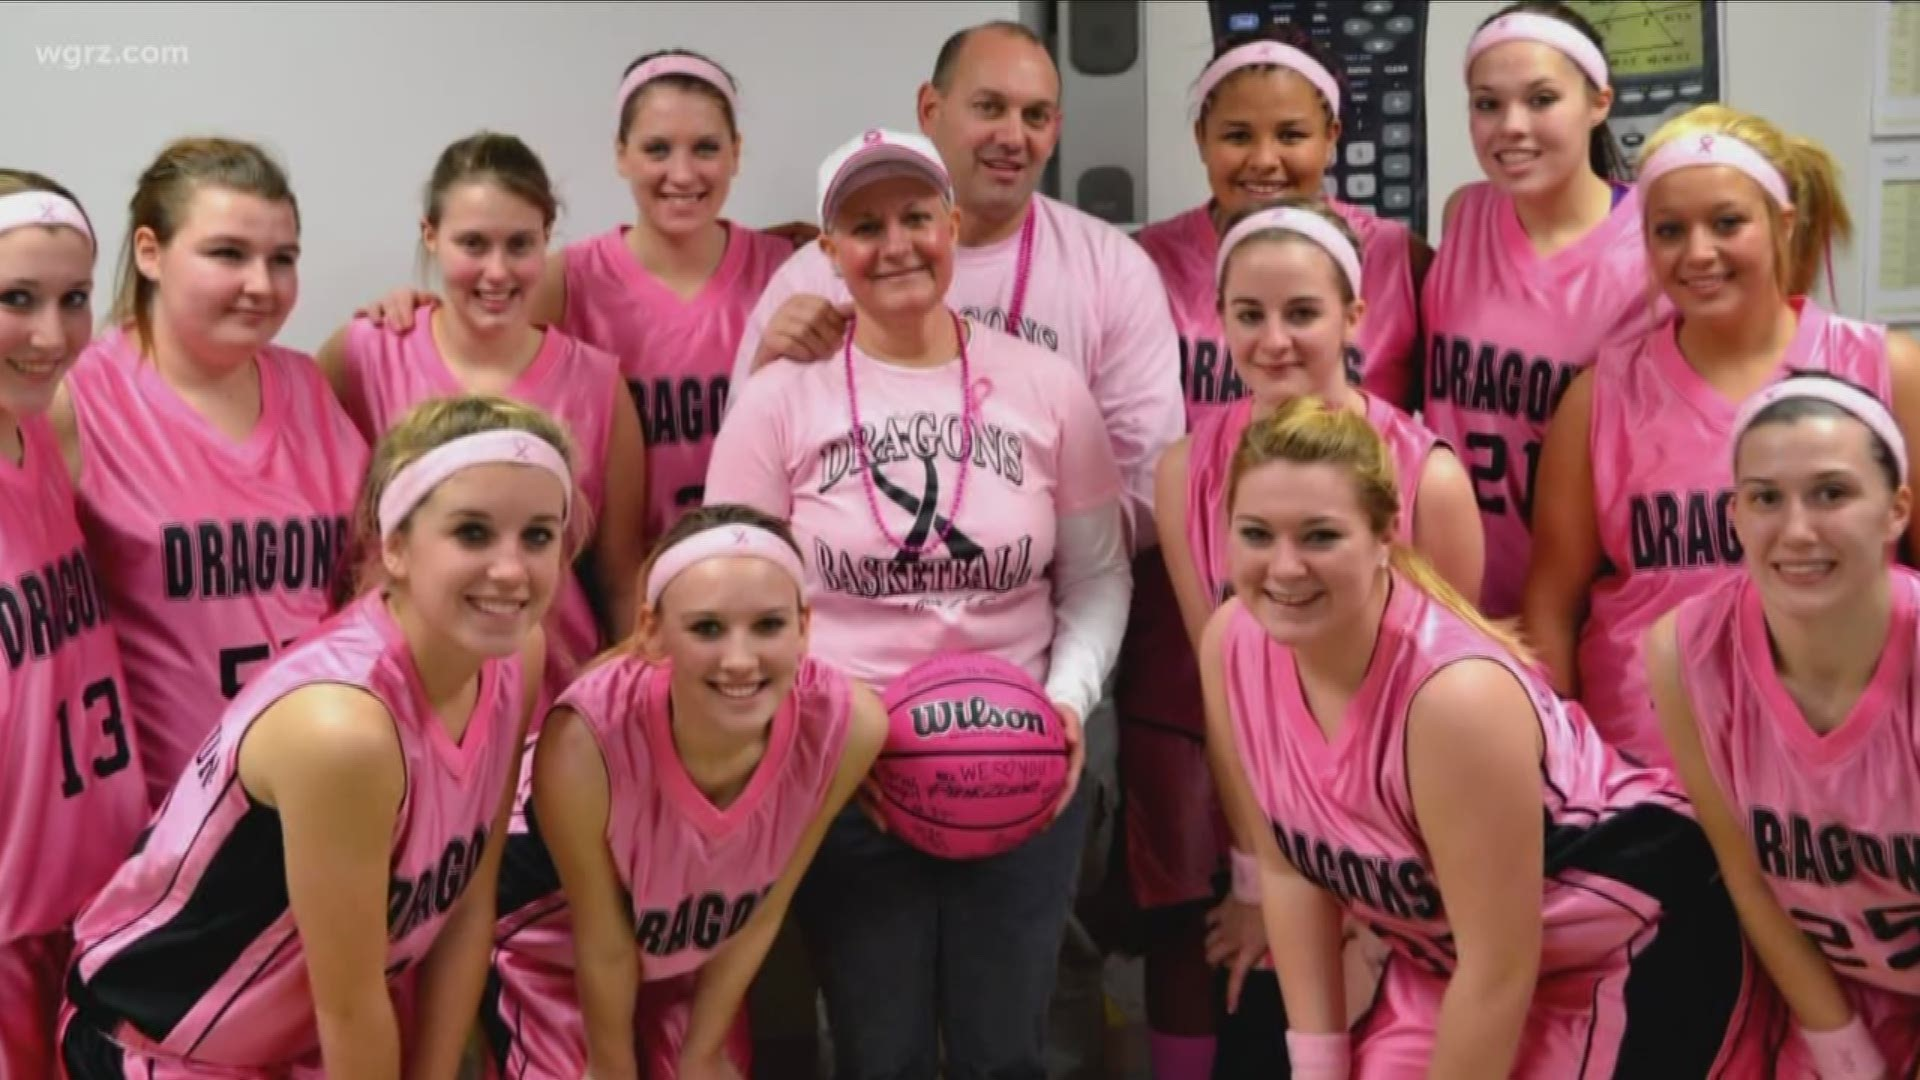 Pembroke Girls Basketball Team To Host 9th Annual Shooting For A Cure Game To Raise Money For Roswell Park Wgrz Com